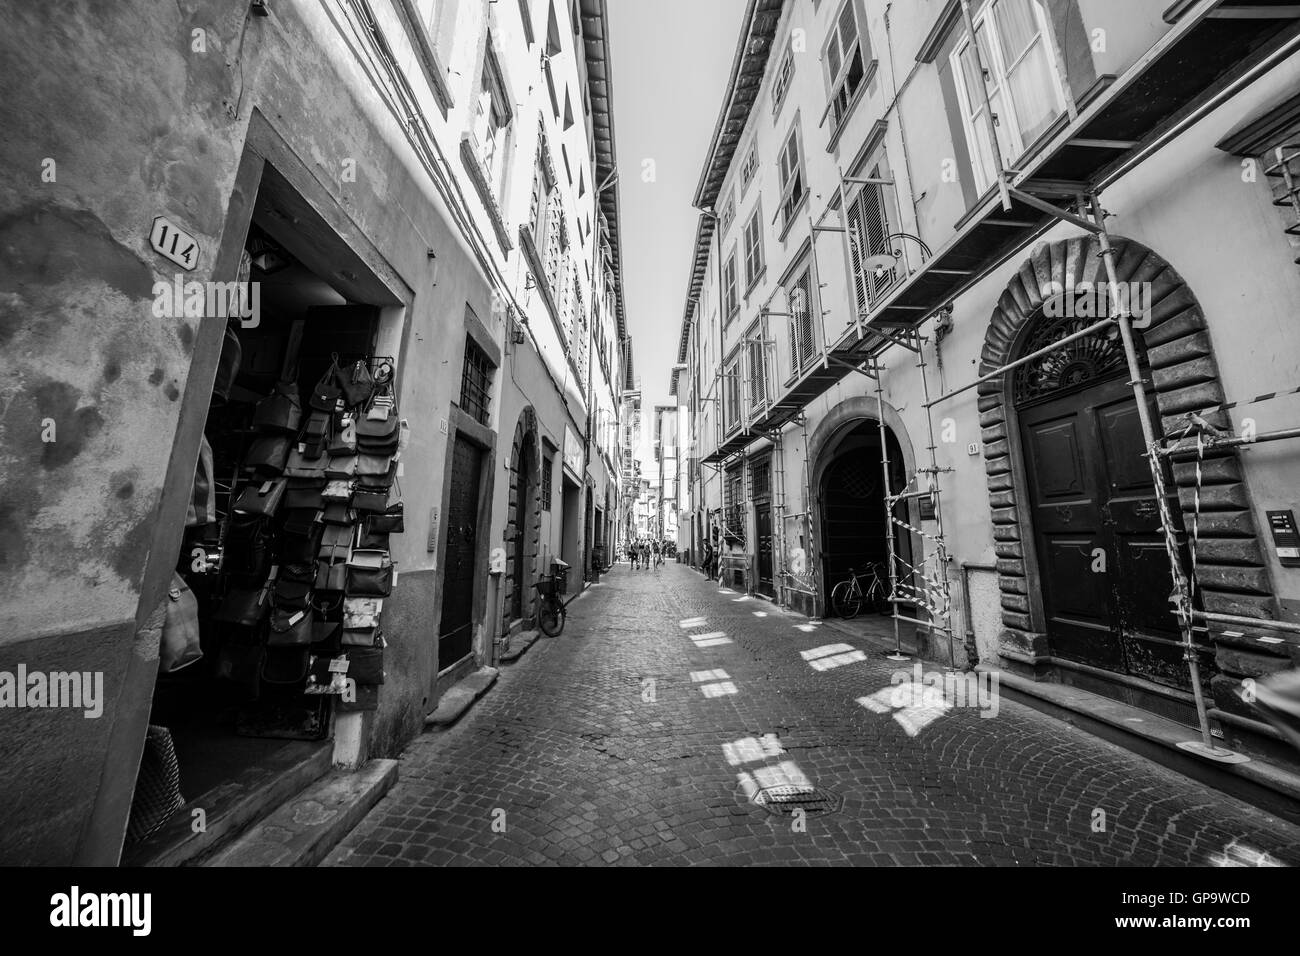 Black and white photograph of a street in the city of Lucca. - Stock Image